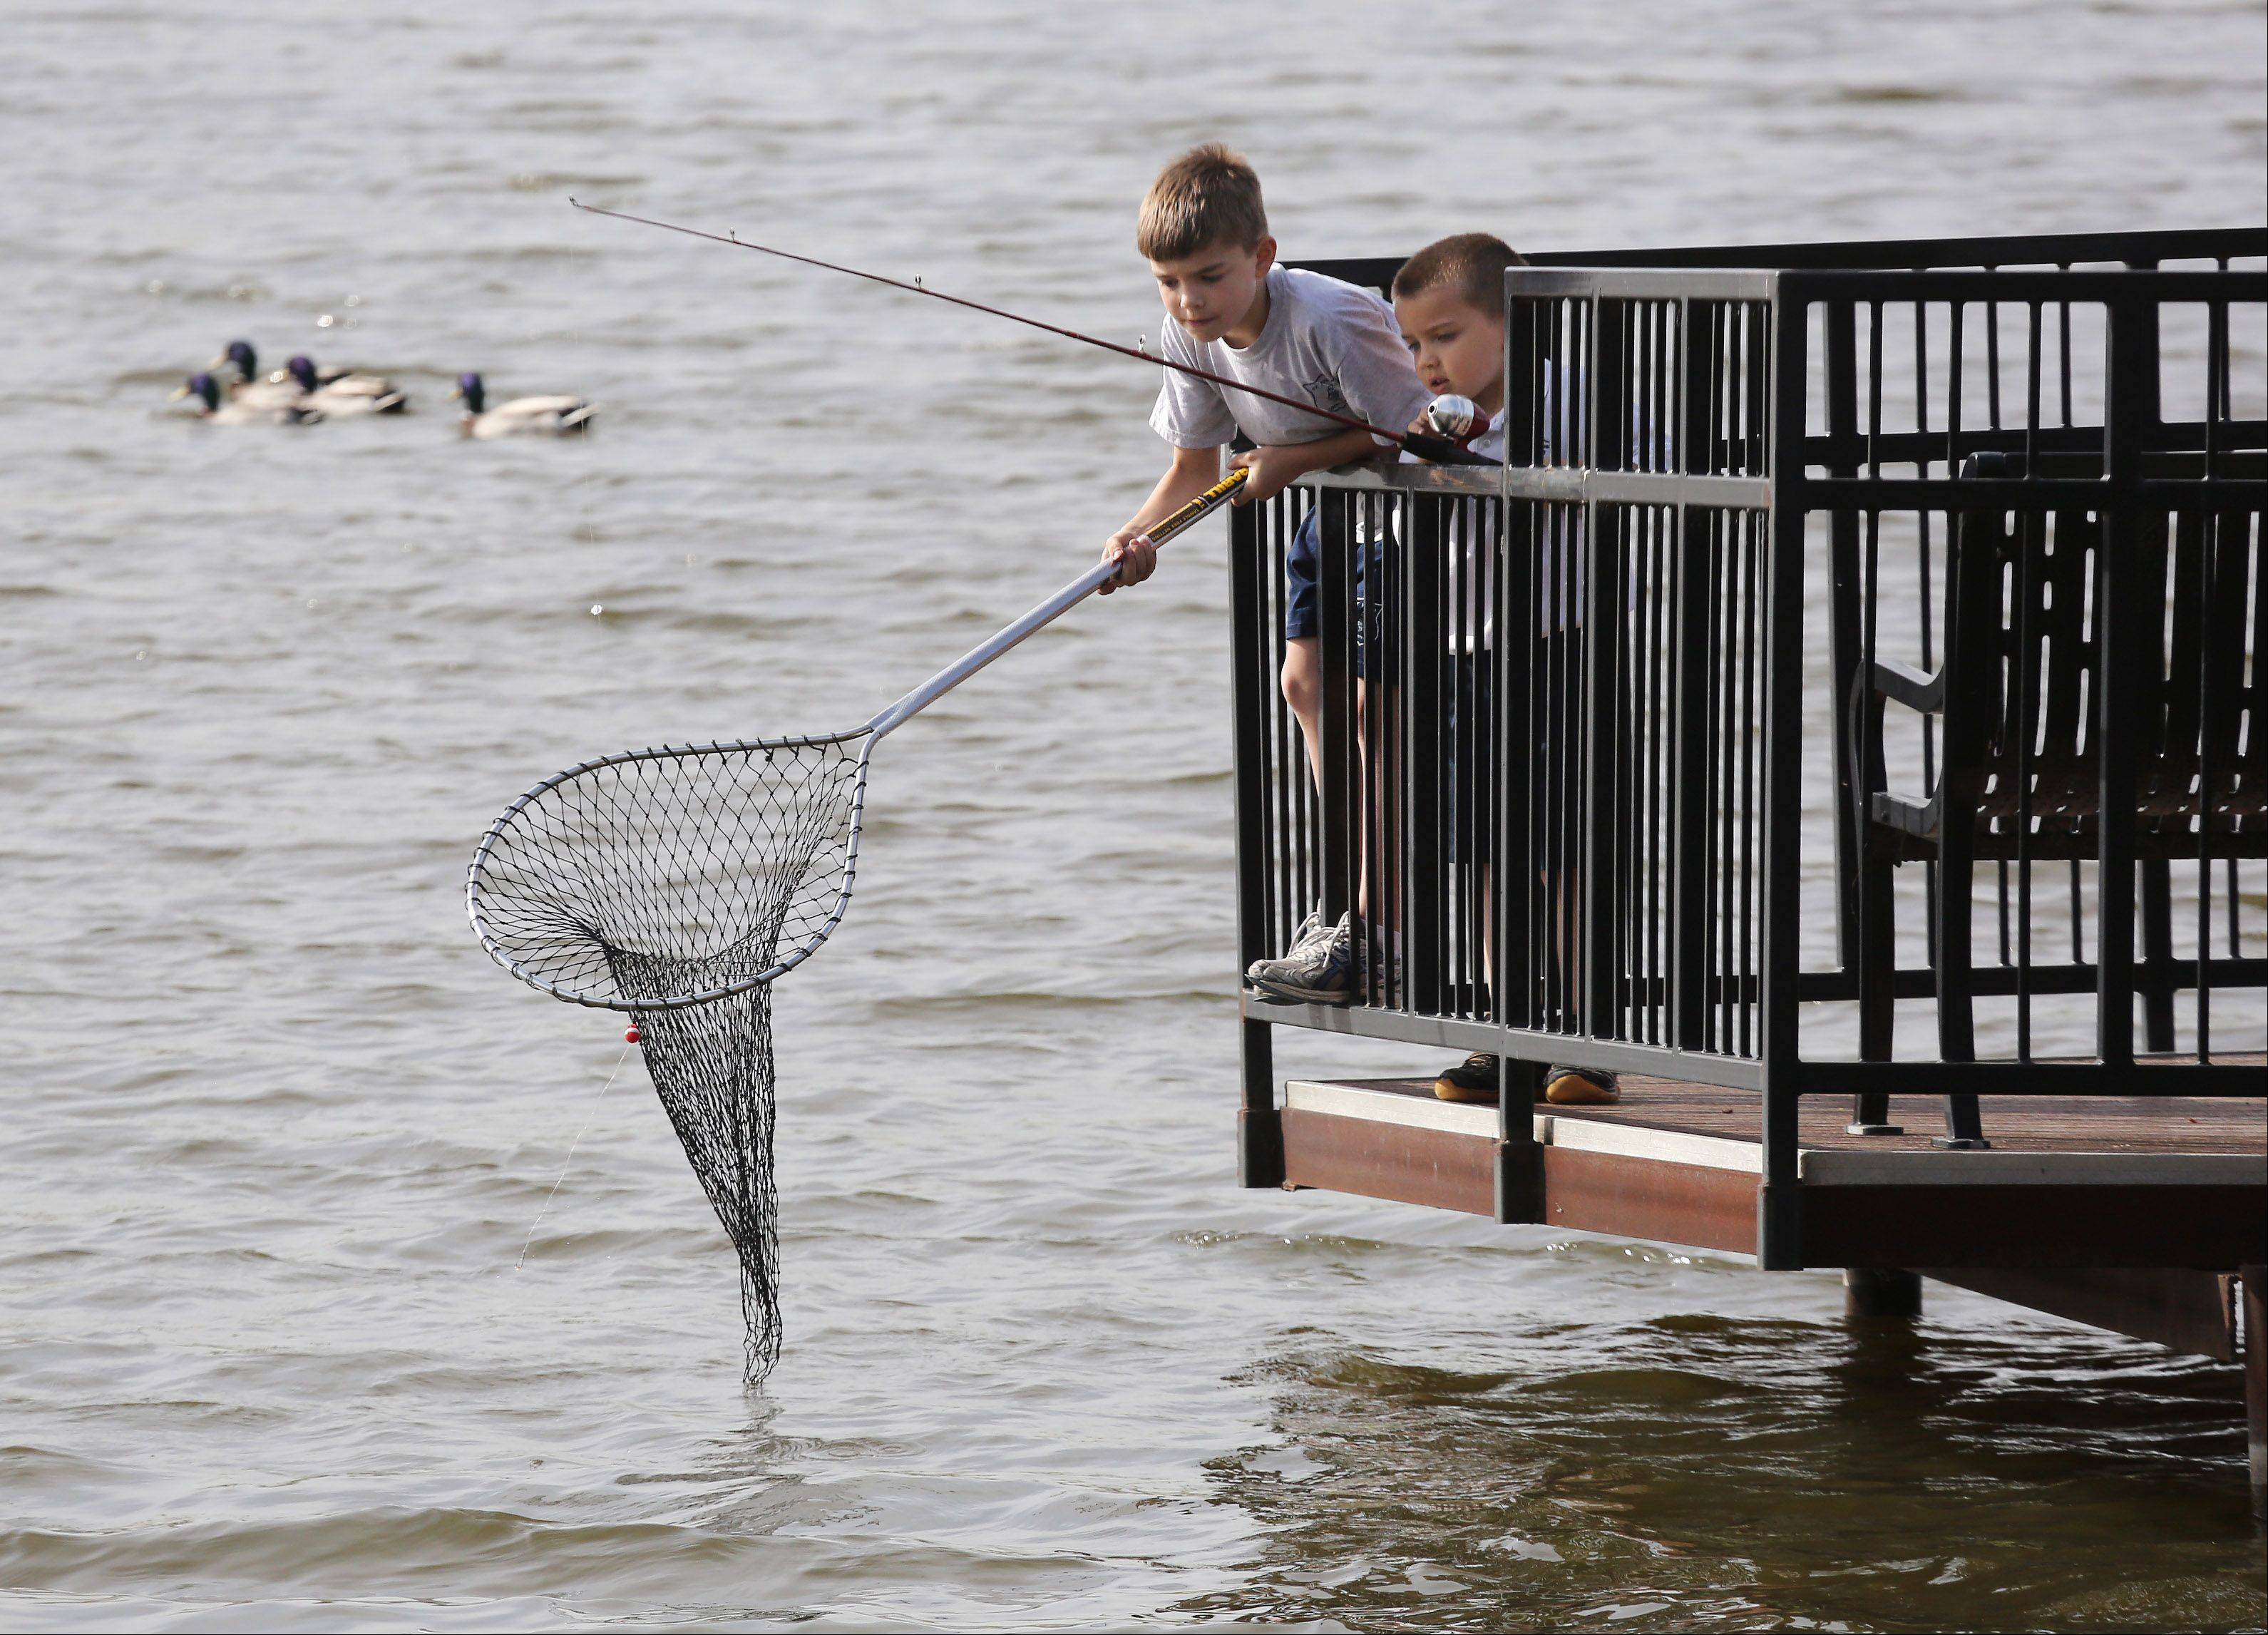 Andrew Chambers, 10, and his younger brother Jeremy, 5, of Vernon Hills, use a net to fish off the pier Monday on Big Bear Lake in Century Park in Vernon Hills.